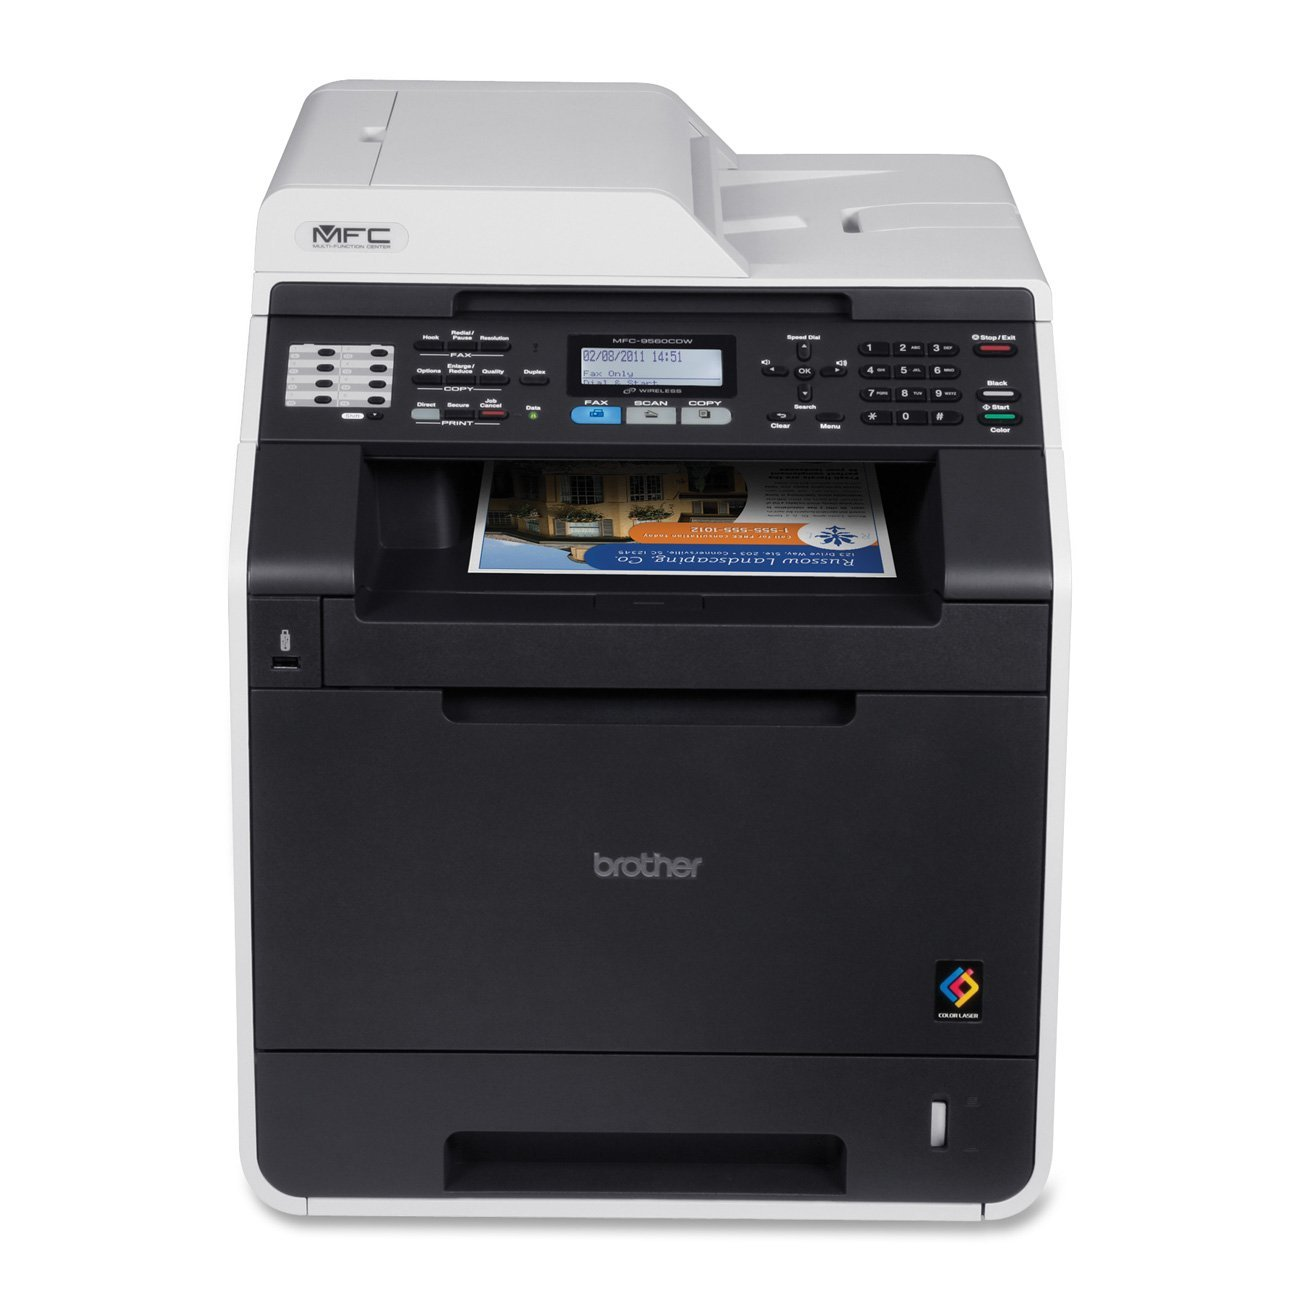 Brother MFC-9560CDW Color Laser MFP, Fully Refurbished (MFC-9560CDW)